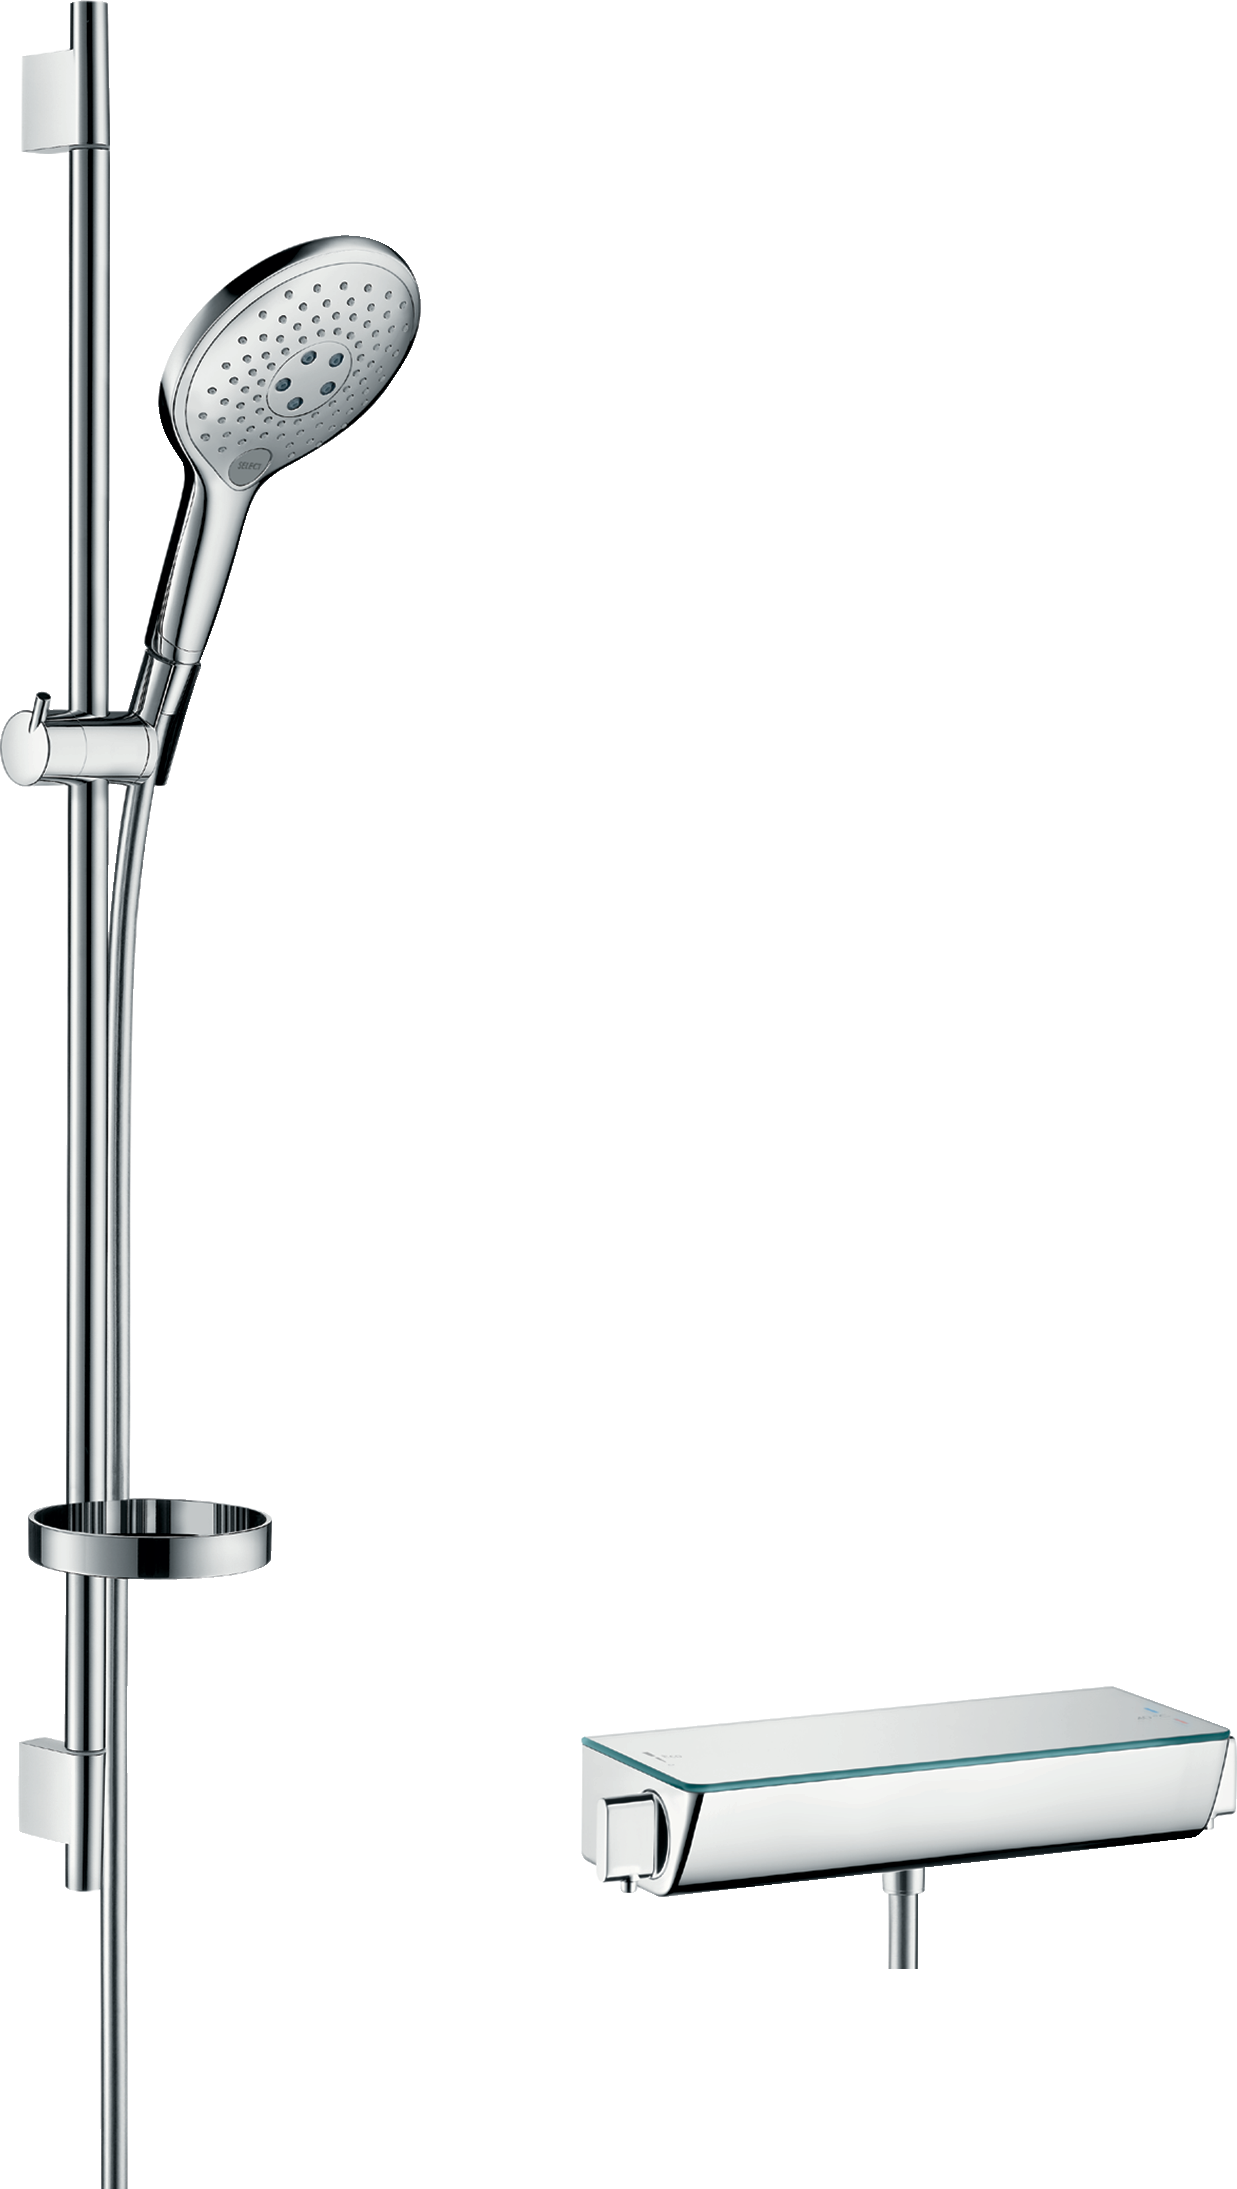 Shower System 150 With Ecostat Select Thermostatic Mixer And Rail 90 Cm Available At The Following Showrooms